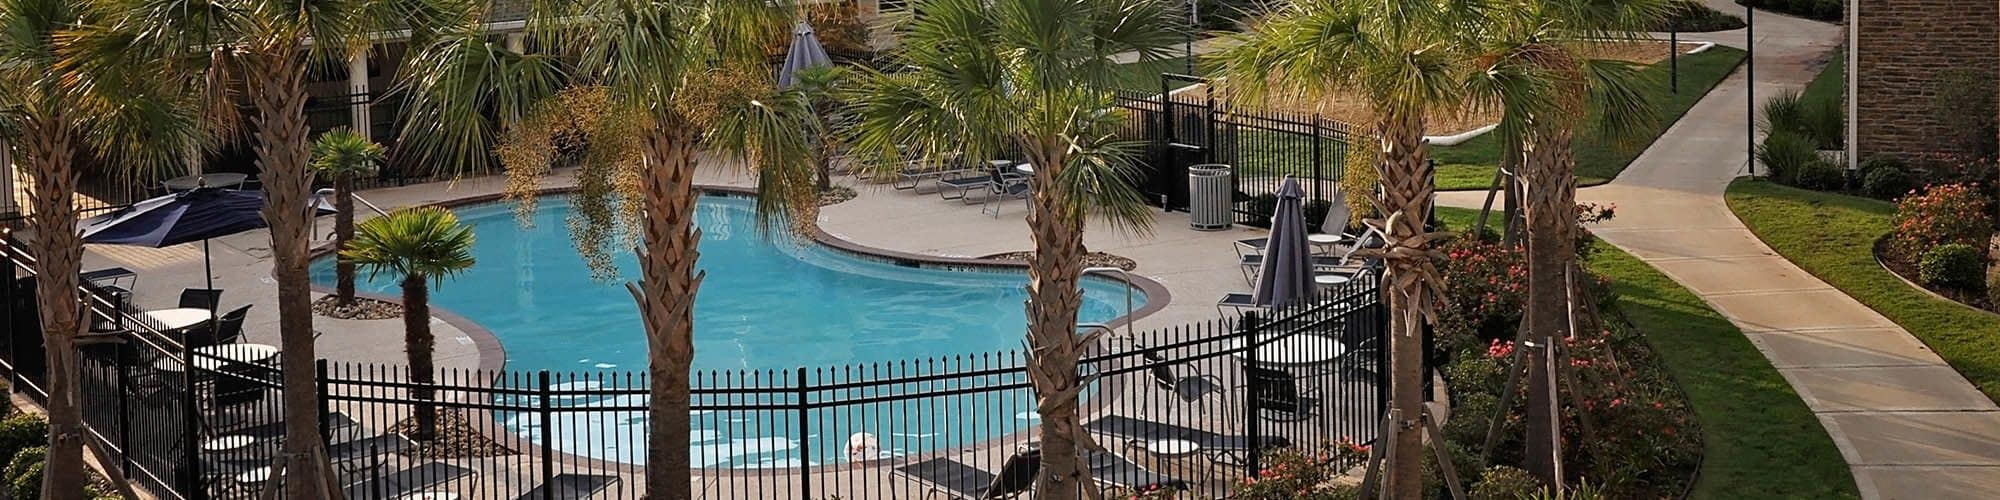 Relax by one of our two pools at Jamestown Place Apartment Homes.